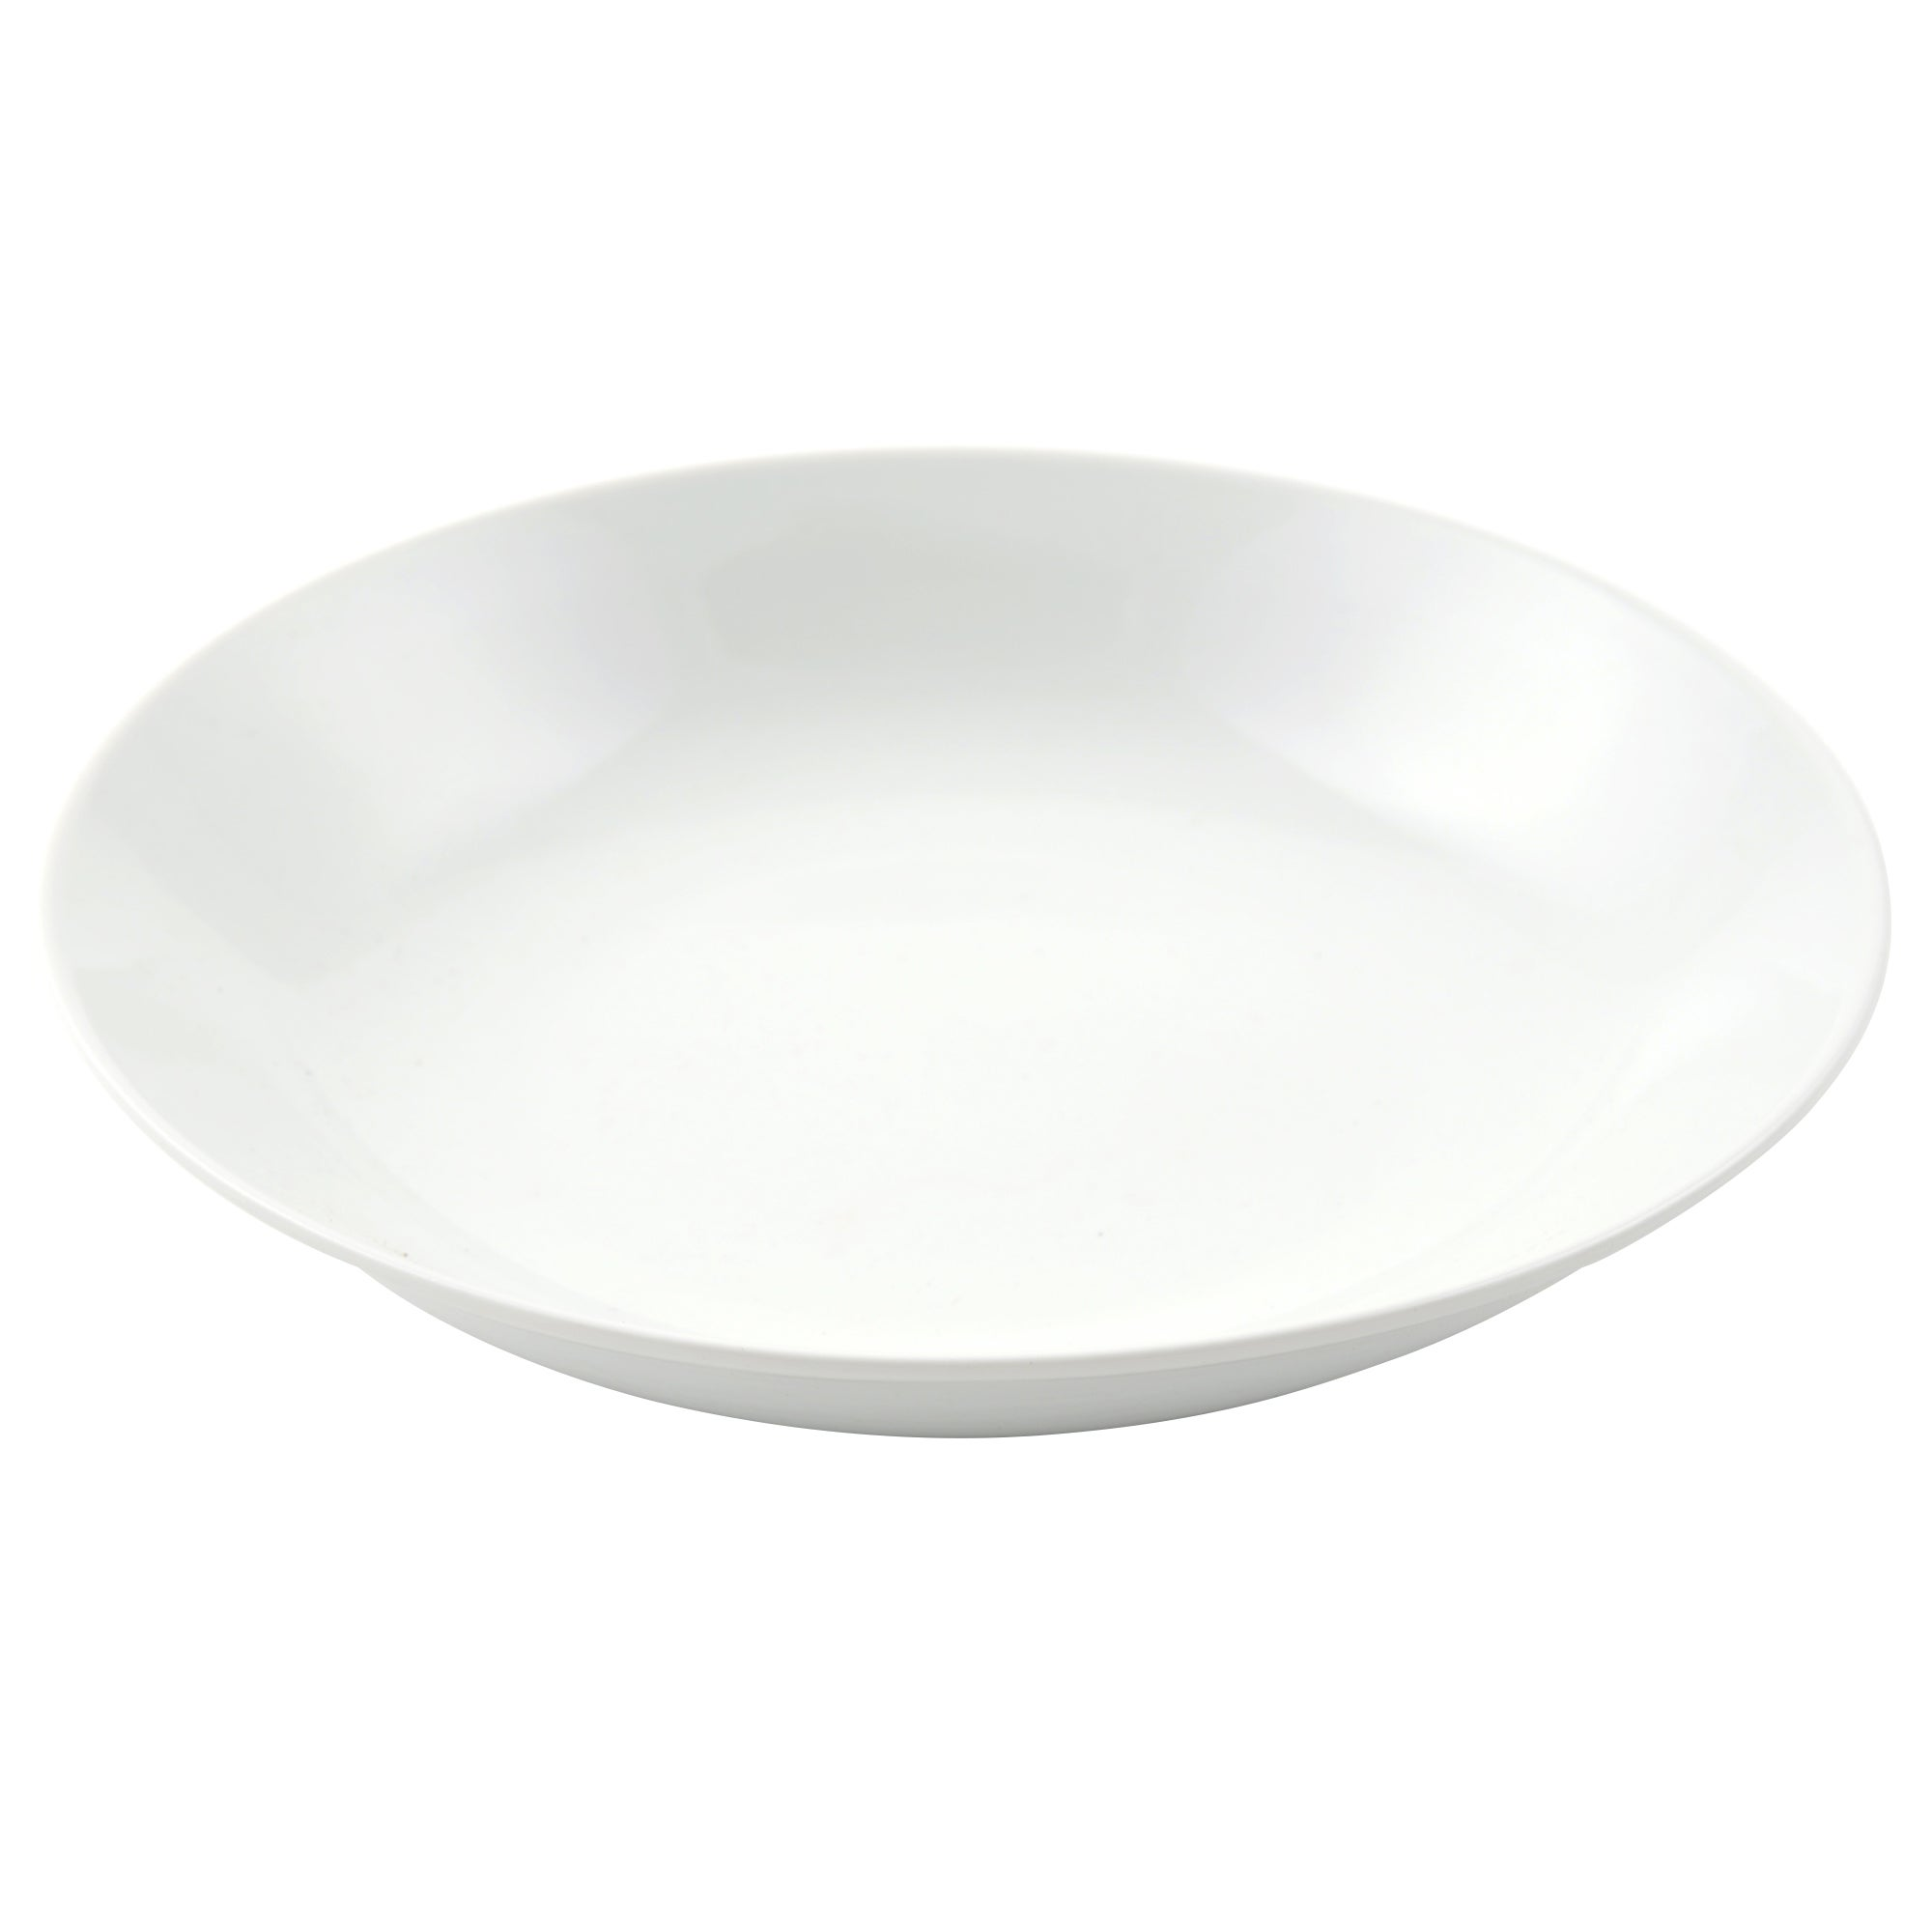 Purity Collection Pasta Dish